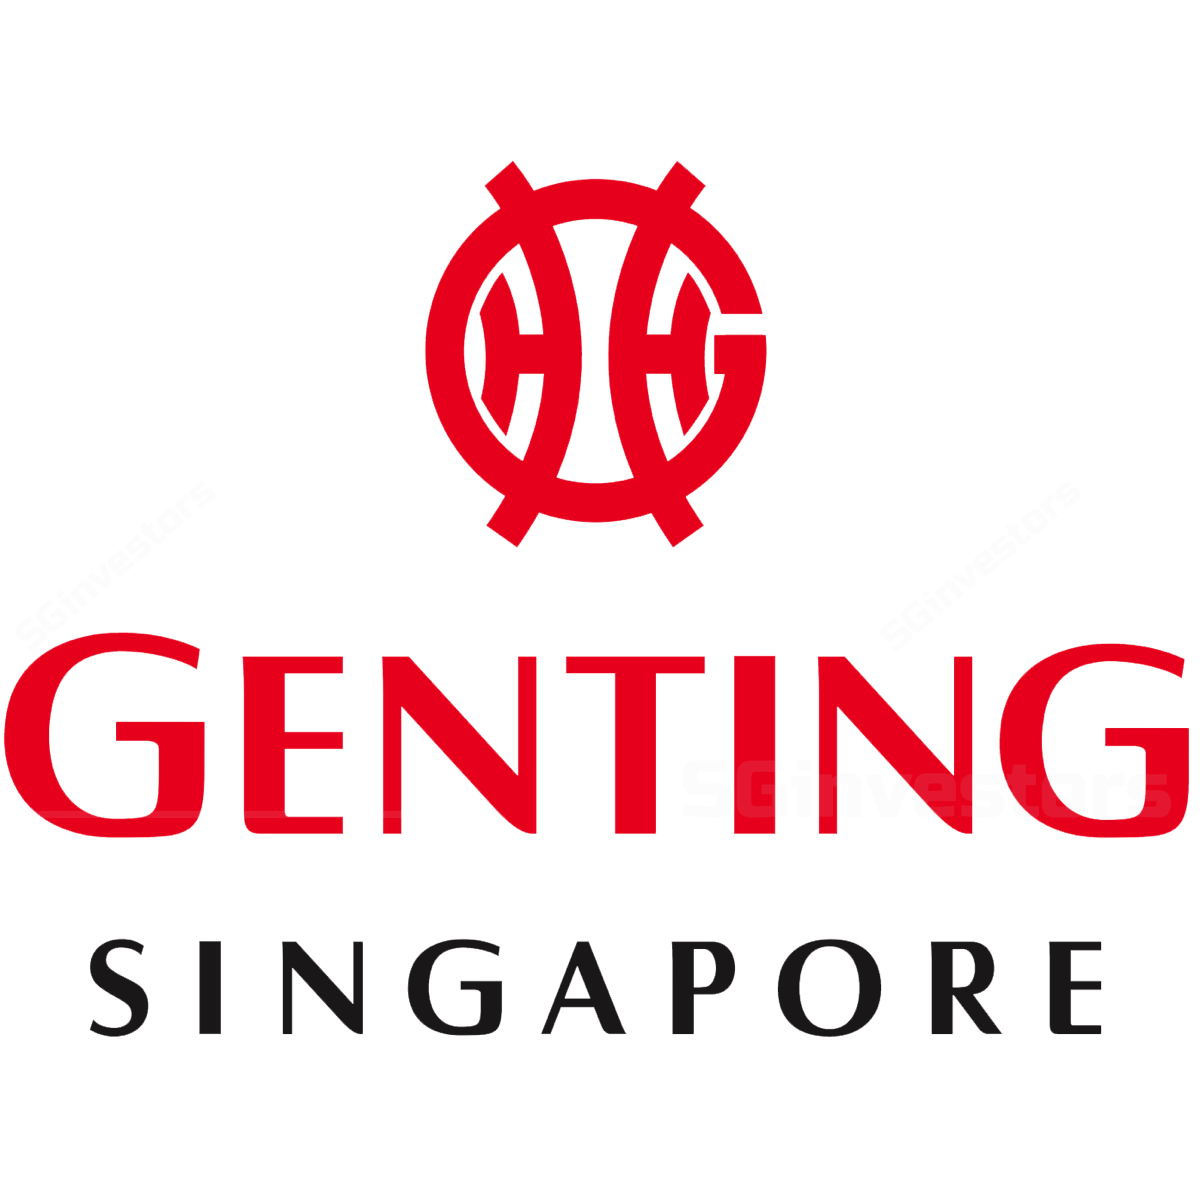 Genting Singapore - DBS Vickers 2018-02-26: Still Holding The Winning Hand